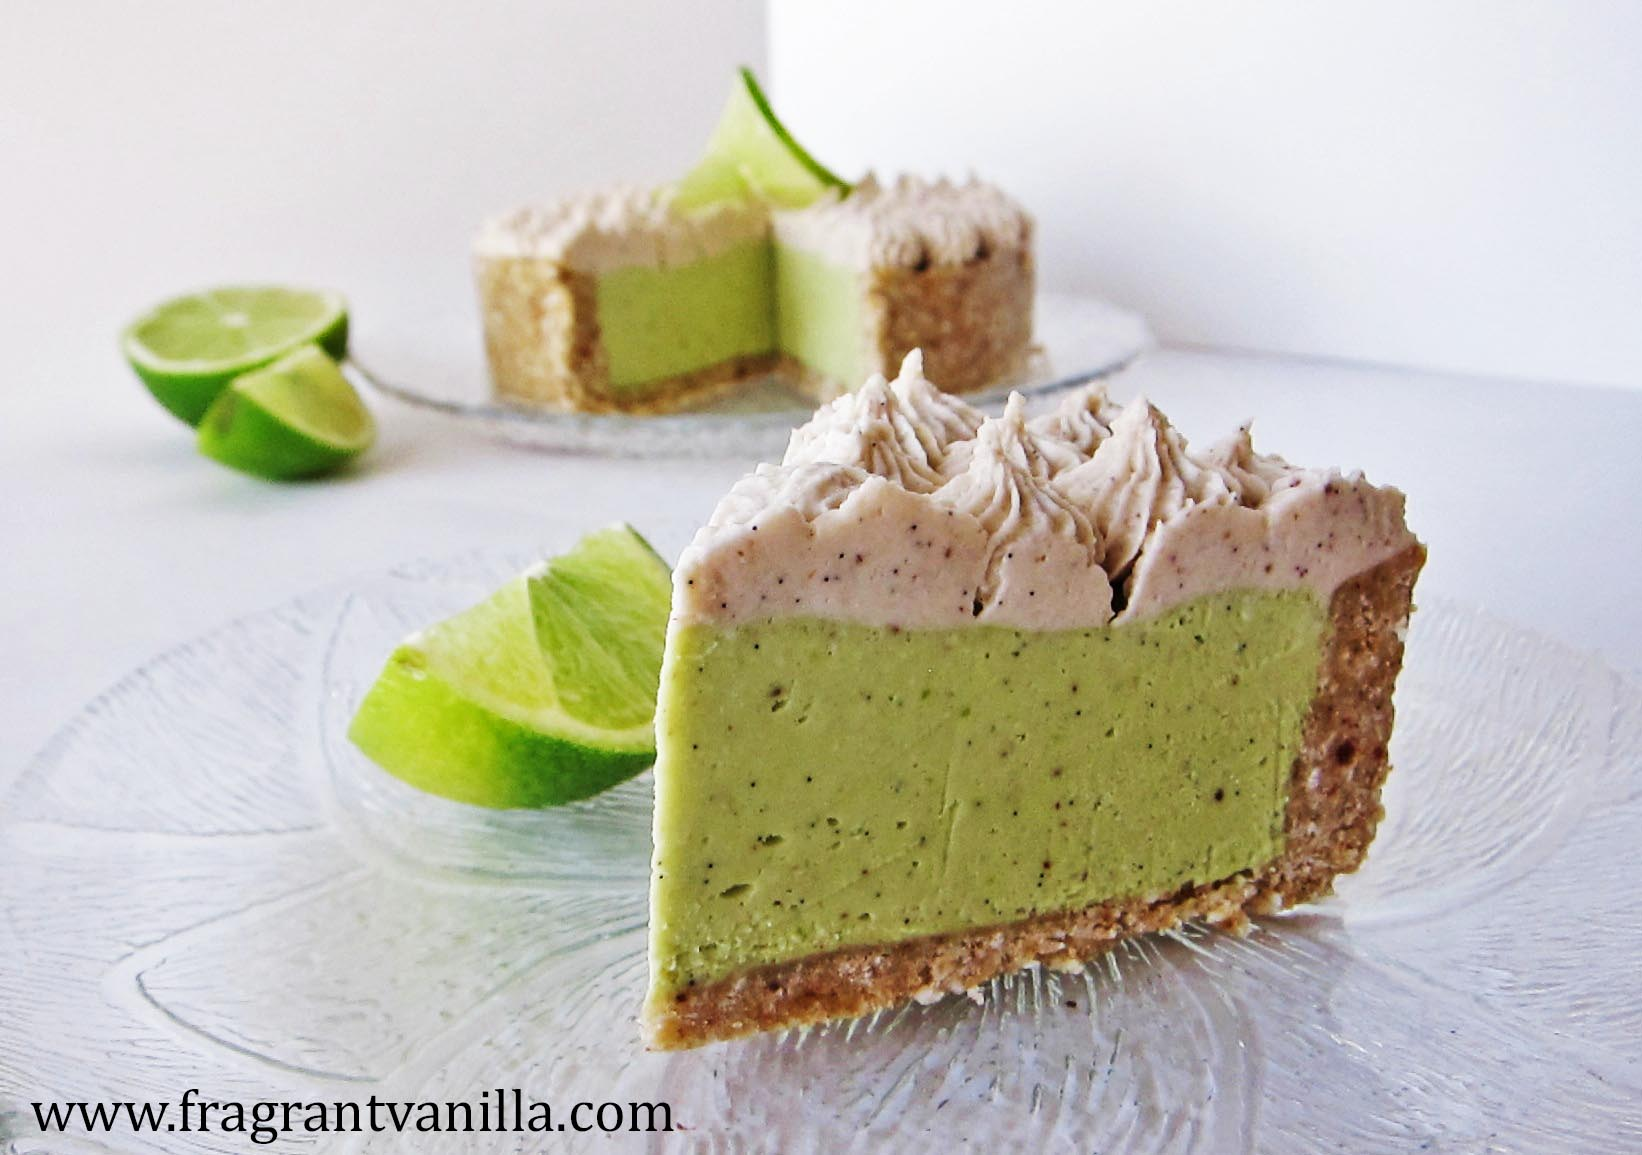 Raw Lime Avocado Tart